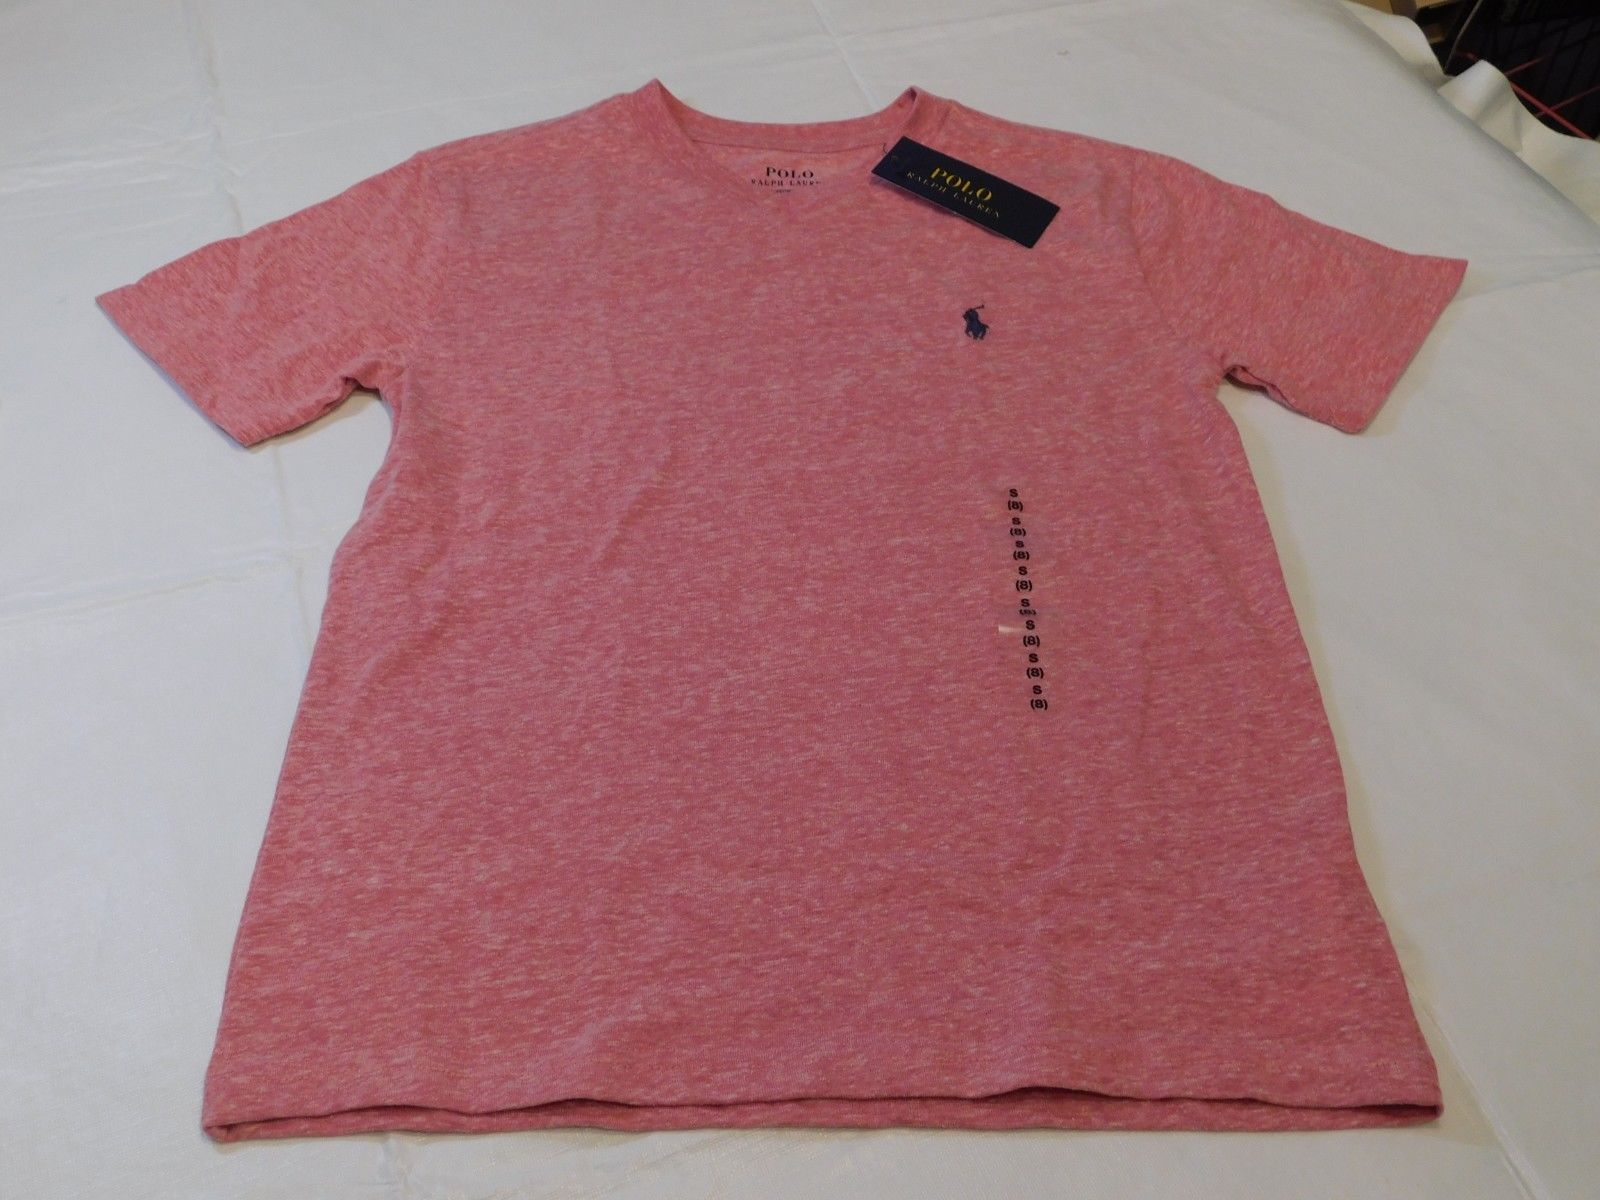 Polo Ralph Lauren Boys Youth Short Sleeve T Shirt S 8 Red Heather 644001 NWT